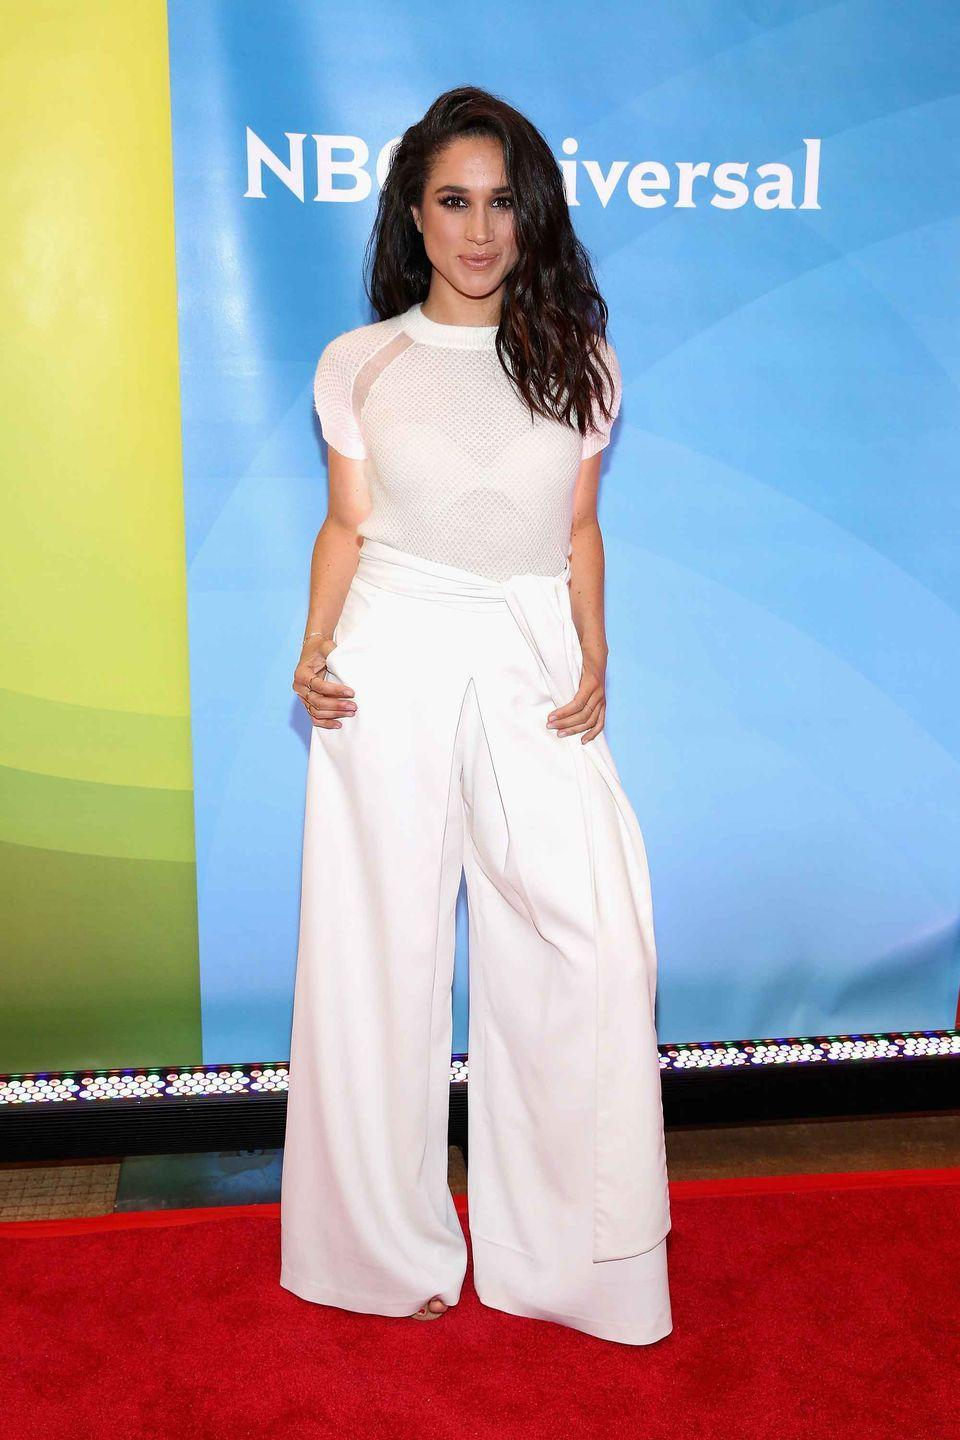 <p>Markle makes a fashion statement in white flare pants while she attends NBC's 2015 New York Summer Press Day at the Four Seasons Hotel. </p>